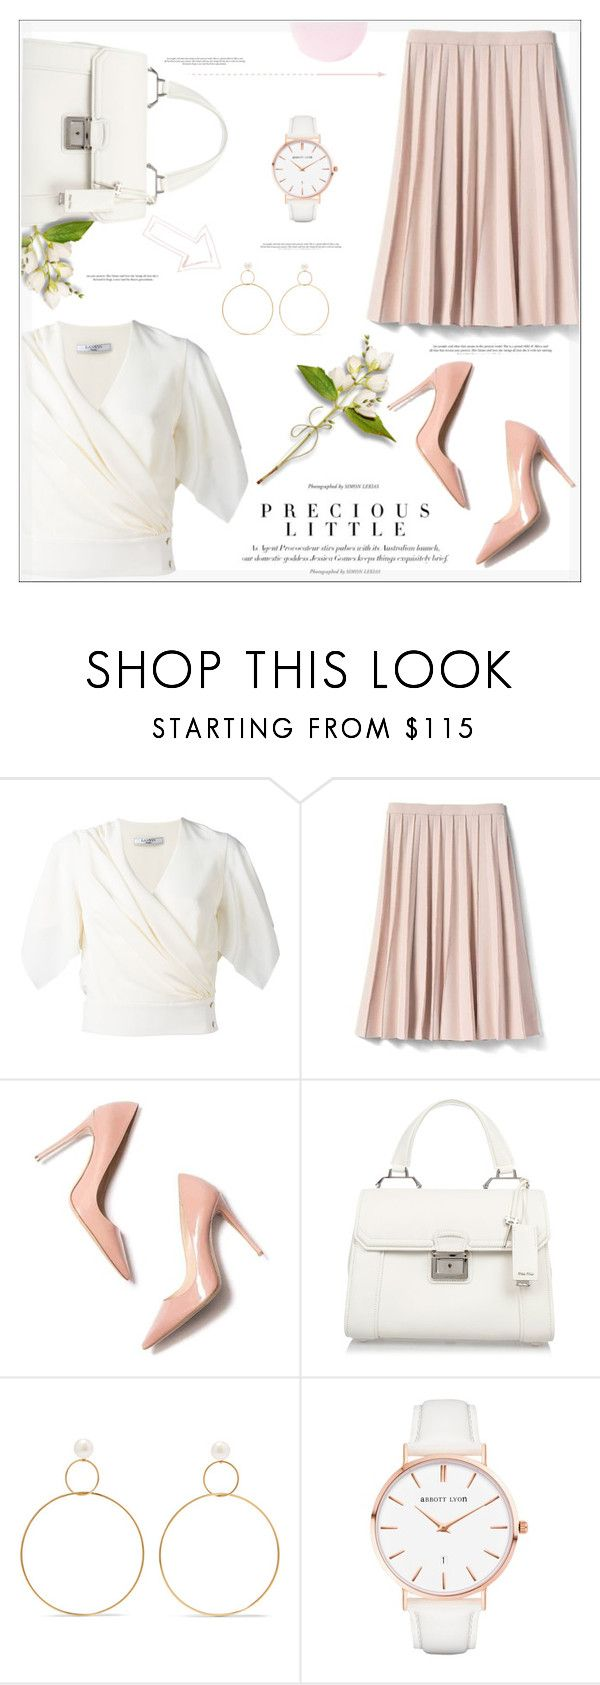 """""""Precious in Pink"""" by suzanne228 ❤ liked on Polyvore featuring Lanvin, Banana Republic, Agent Provocateur, M. Gemi, Miu Miu, Natasha Schweitzer, Abbott Lyon and Smith & Cult"""